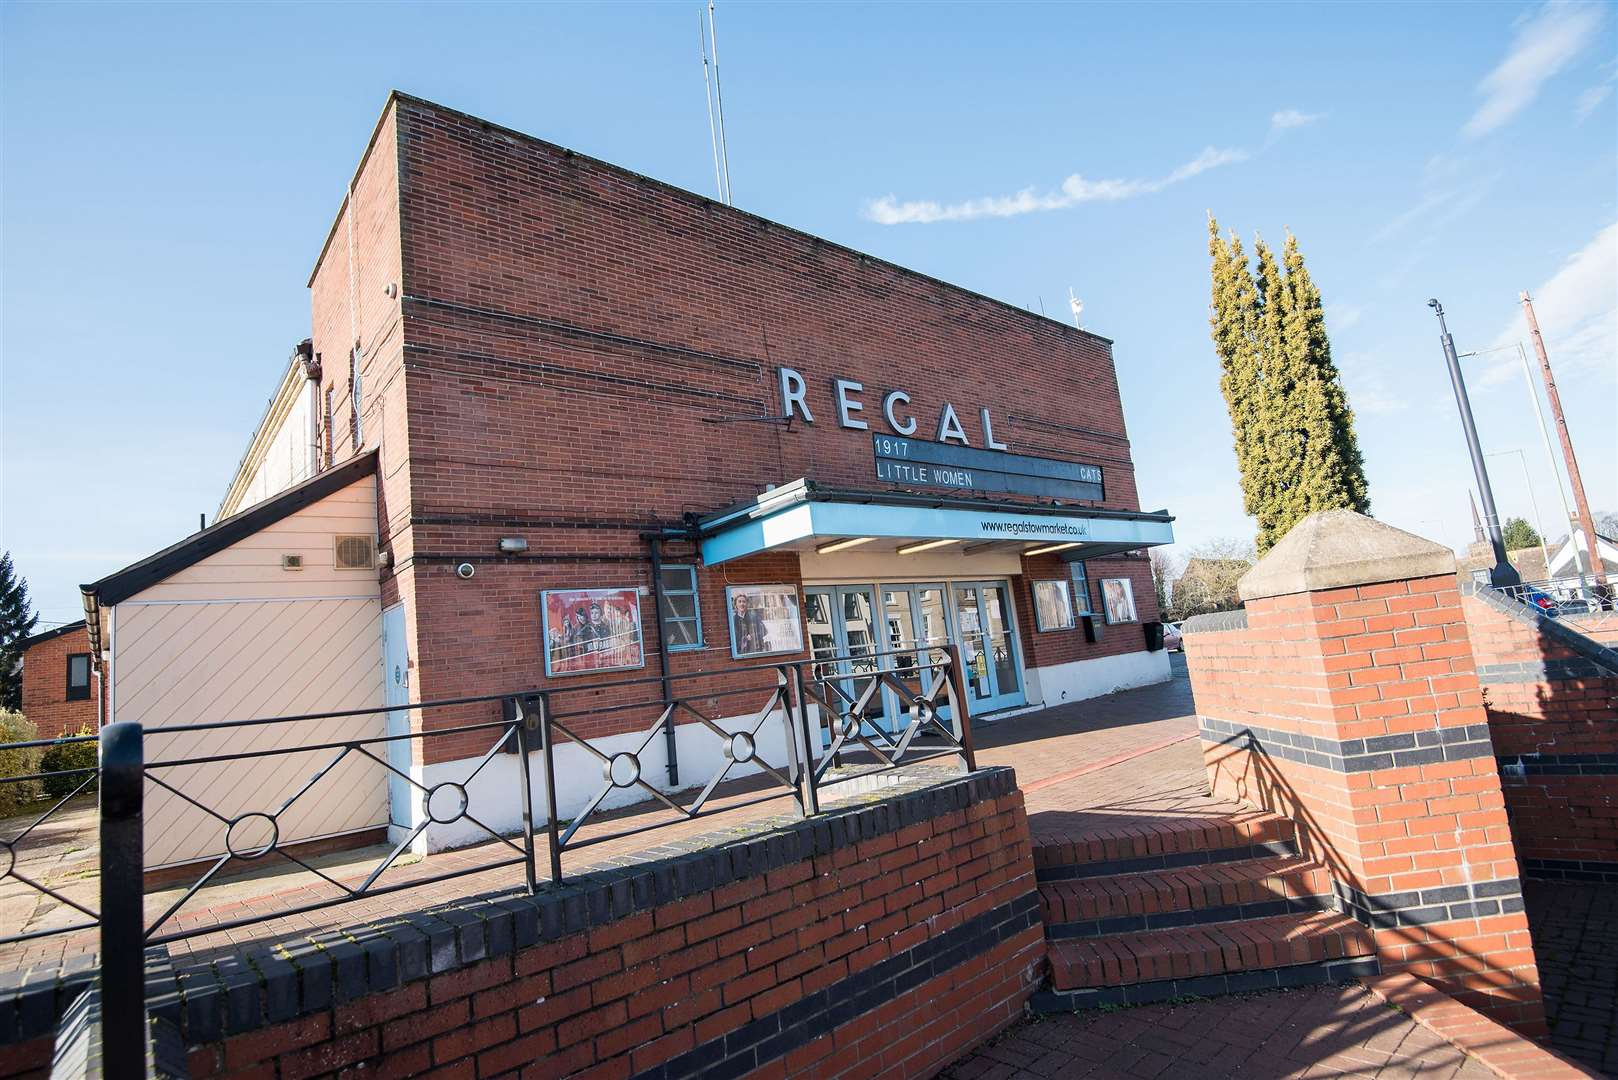 The Regal is the only cinema in mid Suffolk and will close on February 23. The nearby John Peel Centre will show some films in its place.